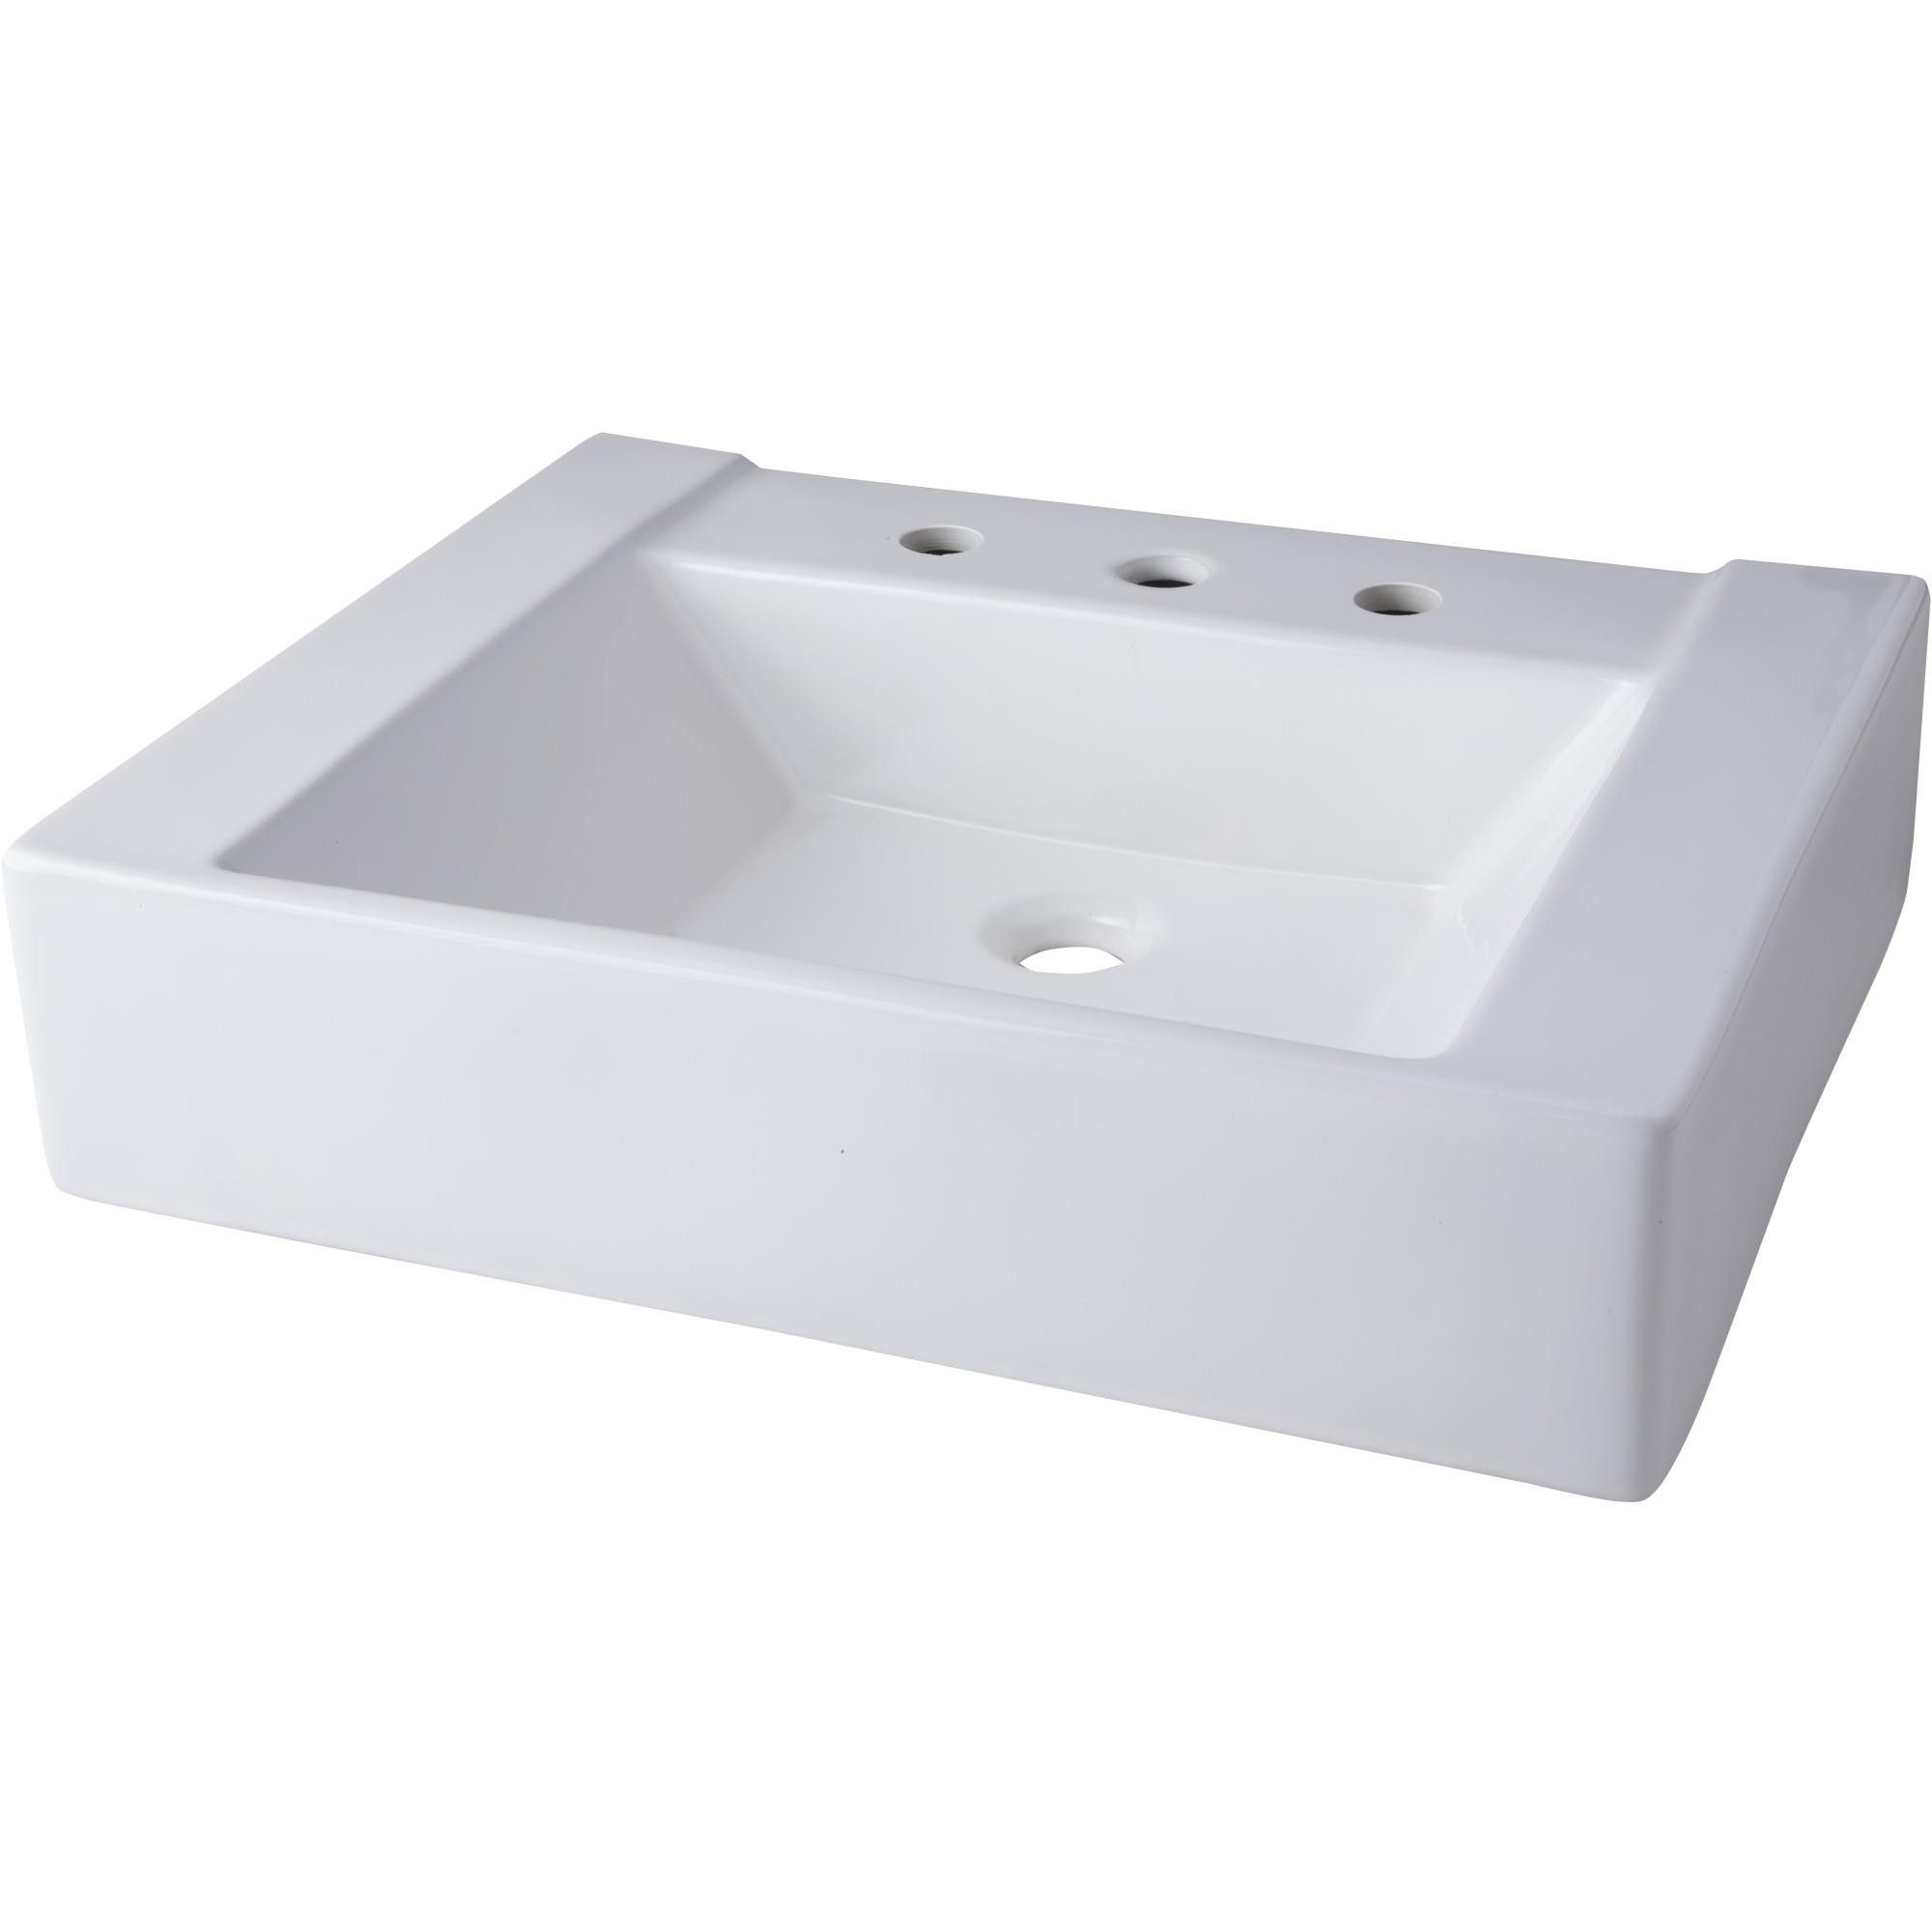 Mirabelle Mir24198a 24 Porcelain Console Bathroom Sink Only White Bathroom Sink Sink Faucet